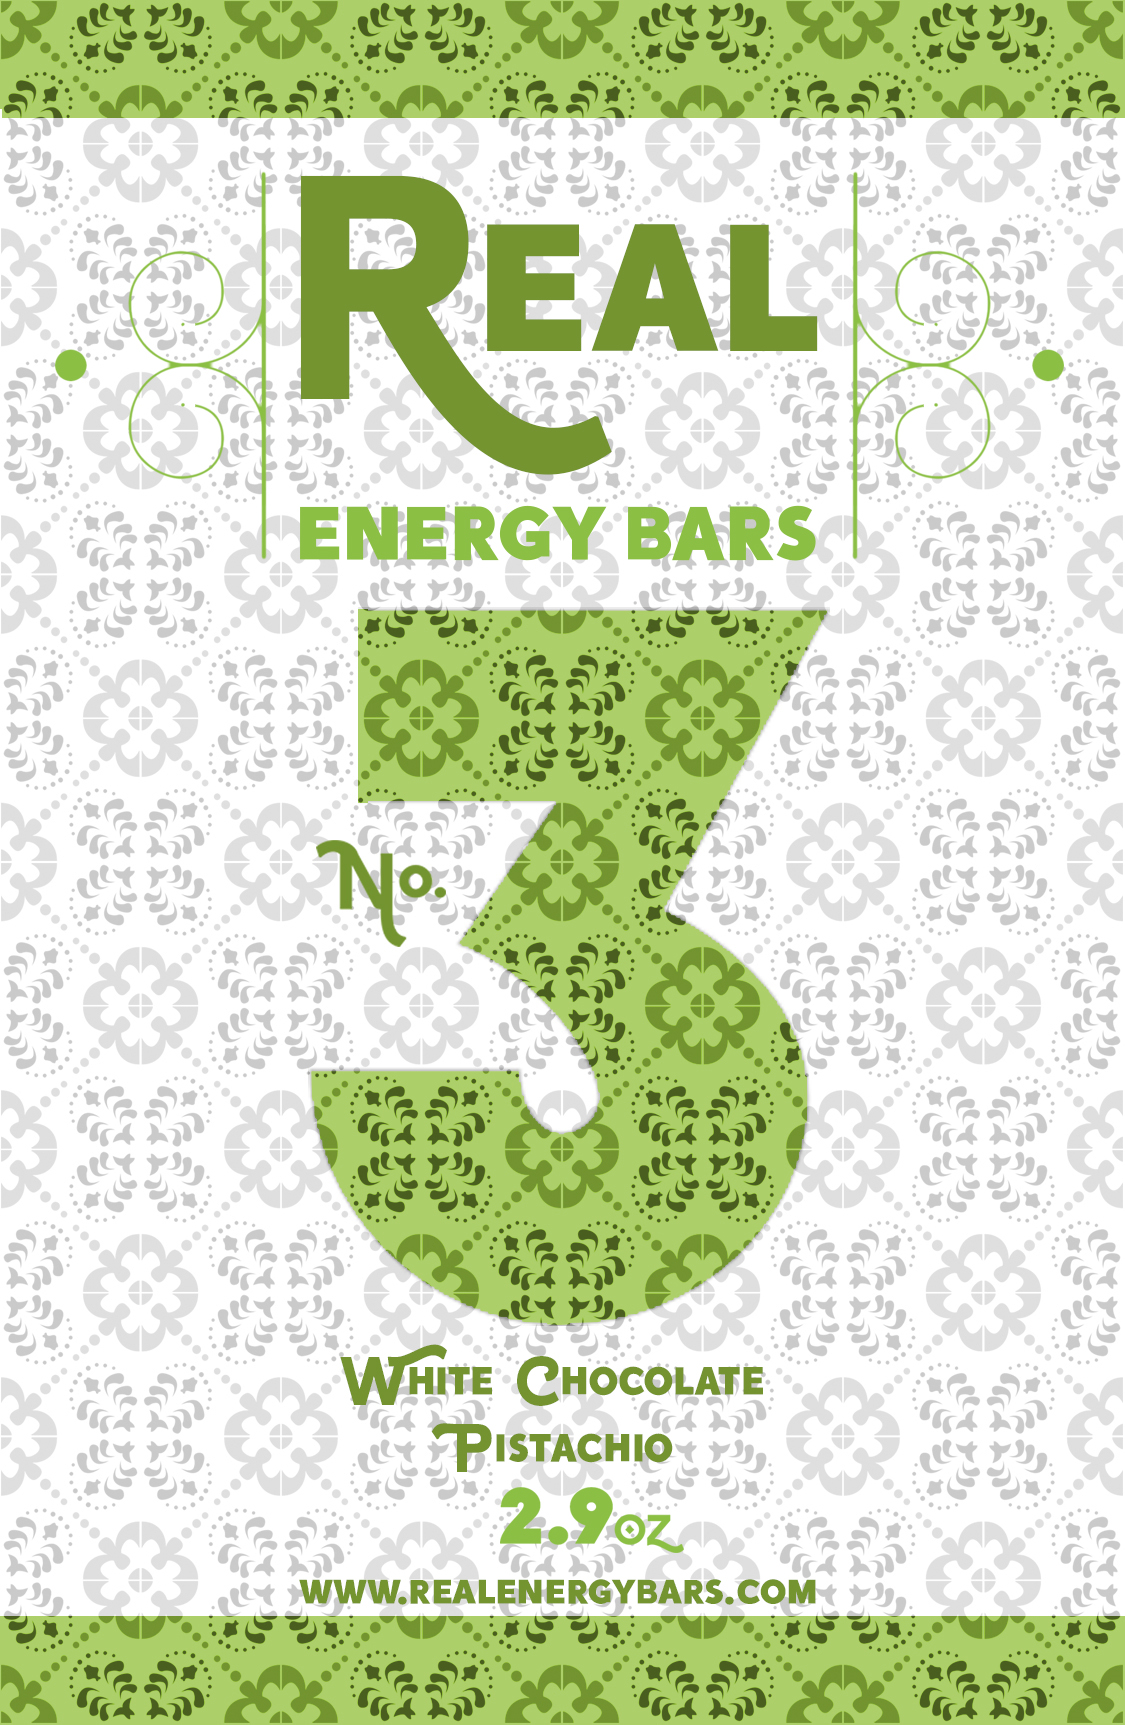 One Bar, or 2. - Designed for coach Tom! White Chocolate for taste quinoa for healthy eating!